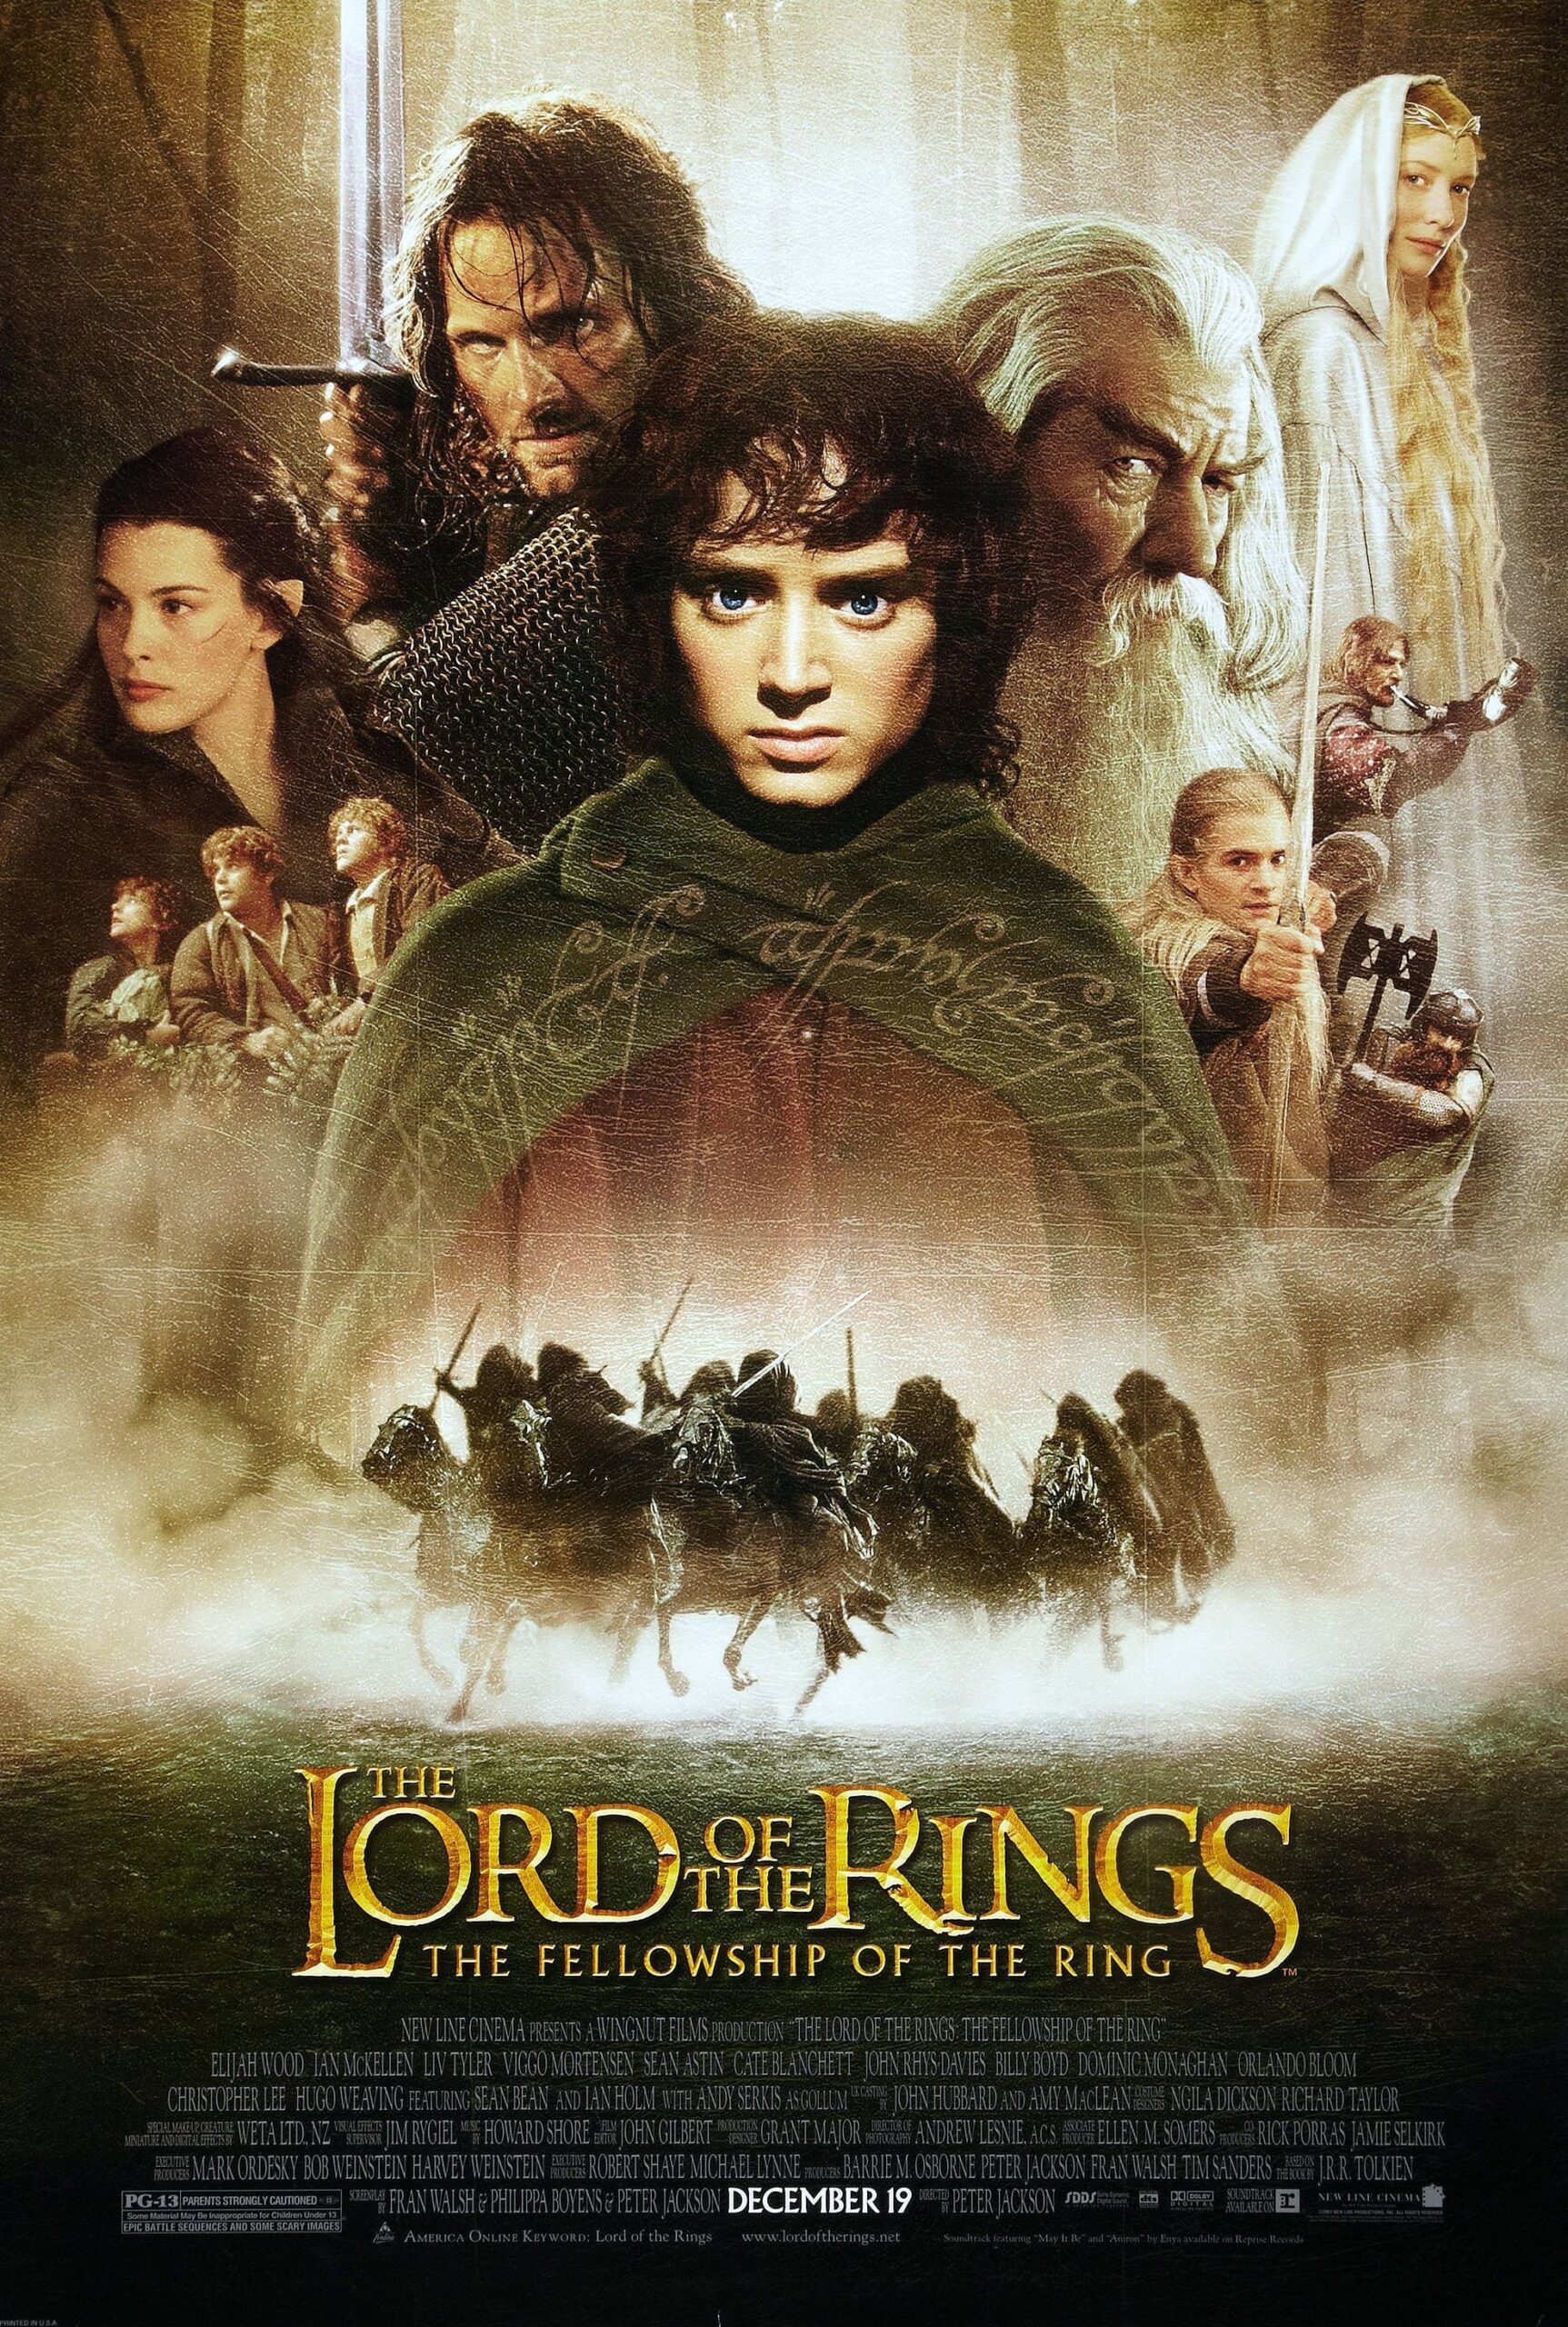 The Lord of the Rings1